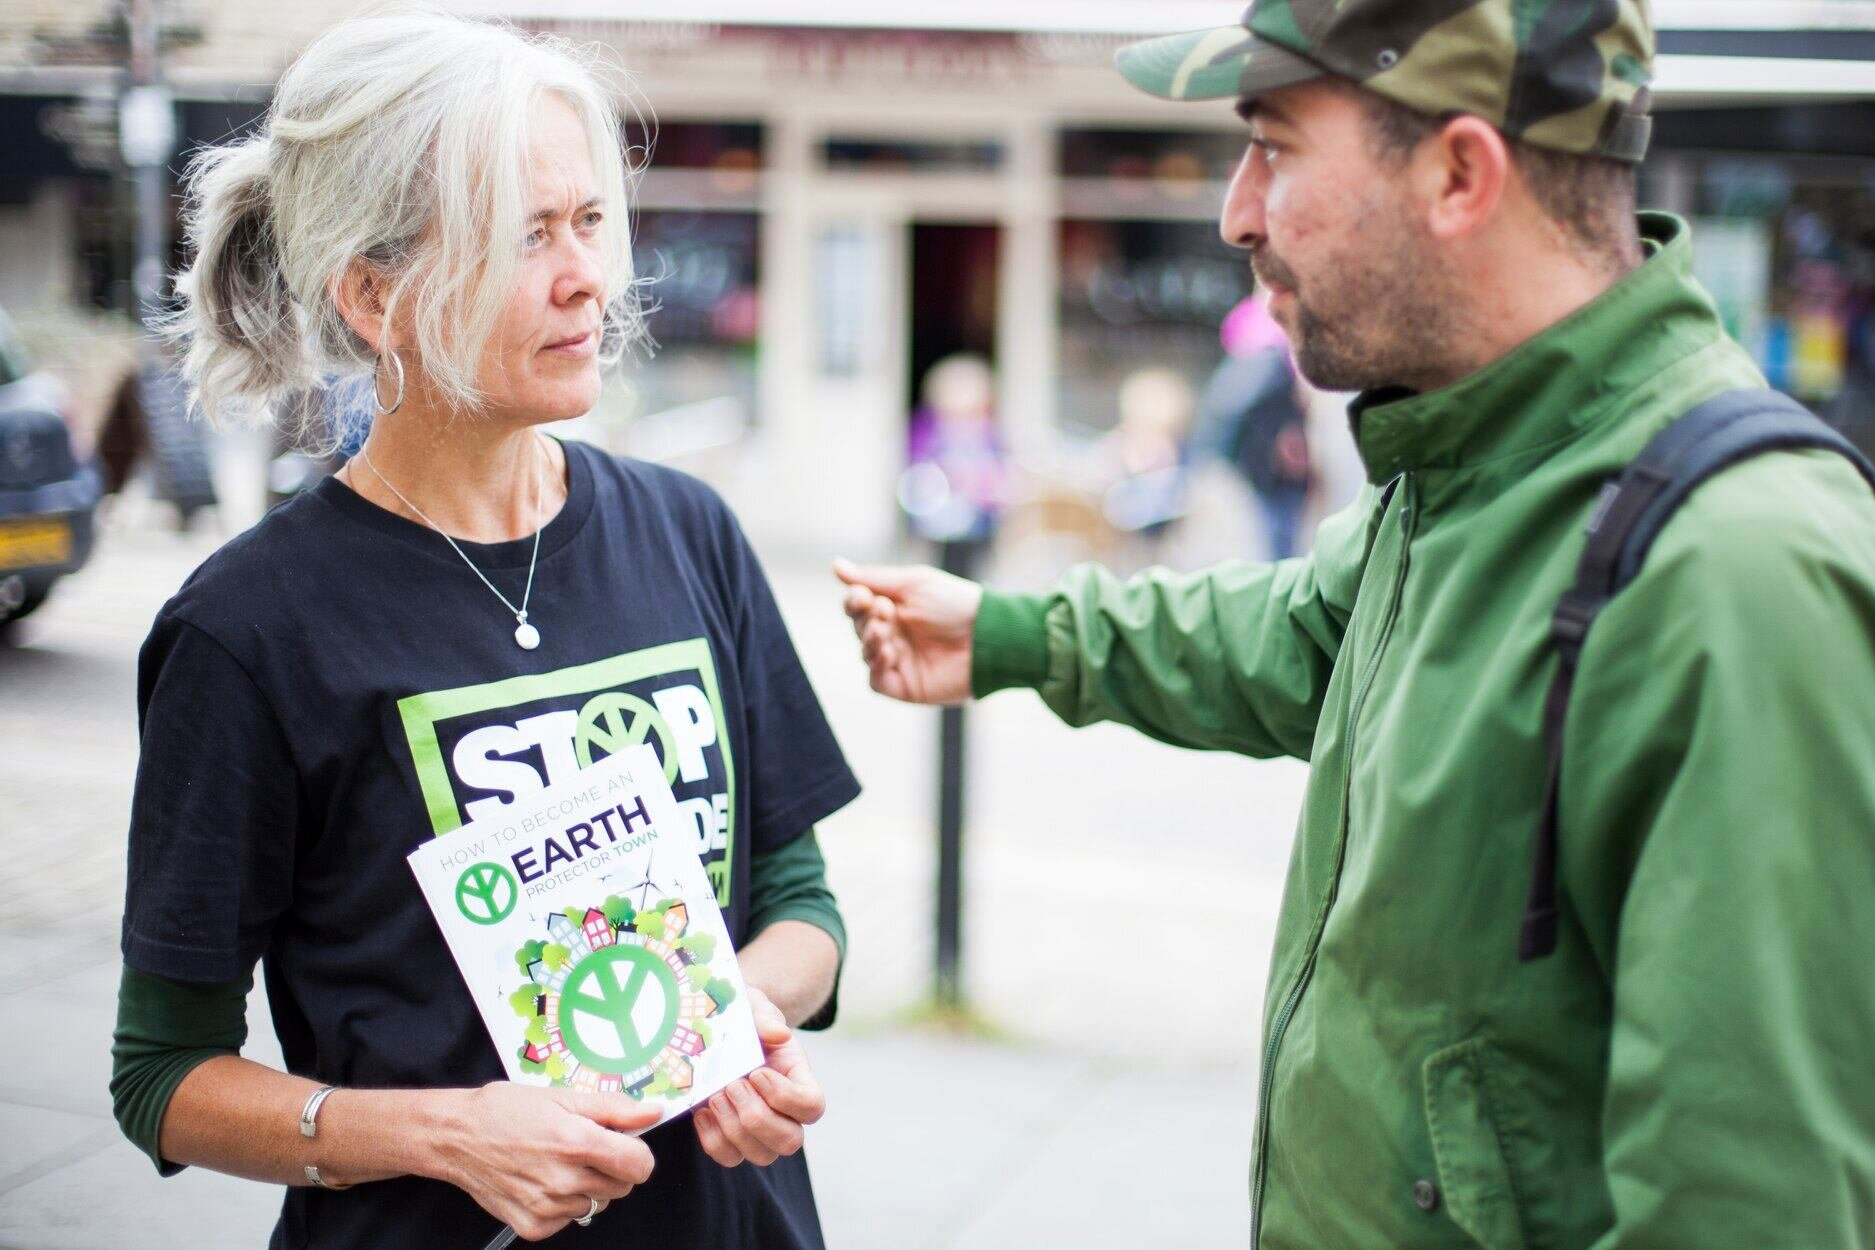 hOW YOU CAN HELp? - By distributing flyers and placards, running an information stall at festivals or events, giving a talk, organising an awareness or fundraising event, helping set up an Earth Protector Town or contributing time or skills such as translation, creative, educational etc